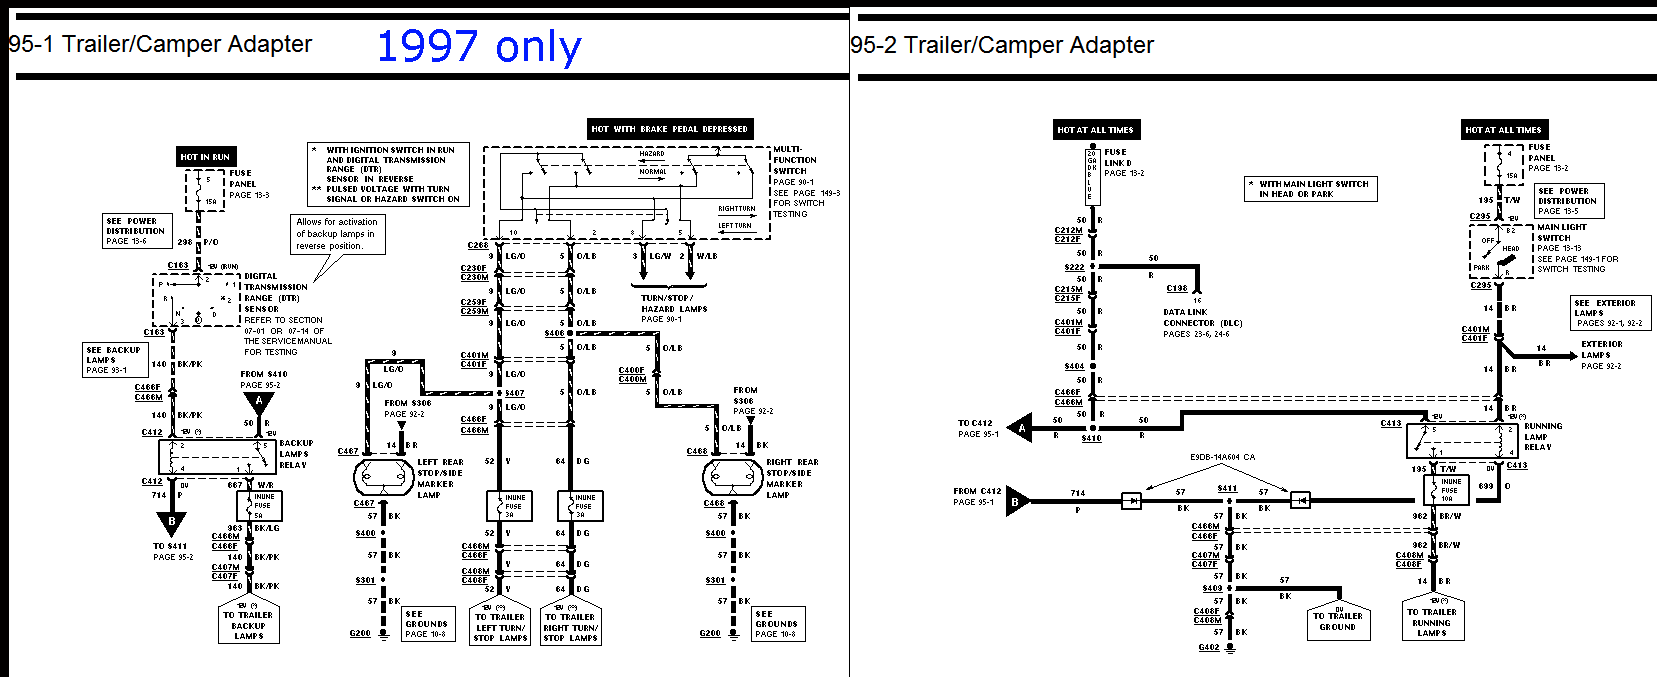 f wiring diagram wiring diagrams online 1997 ford explorer trailer wiring diagram